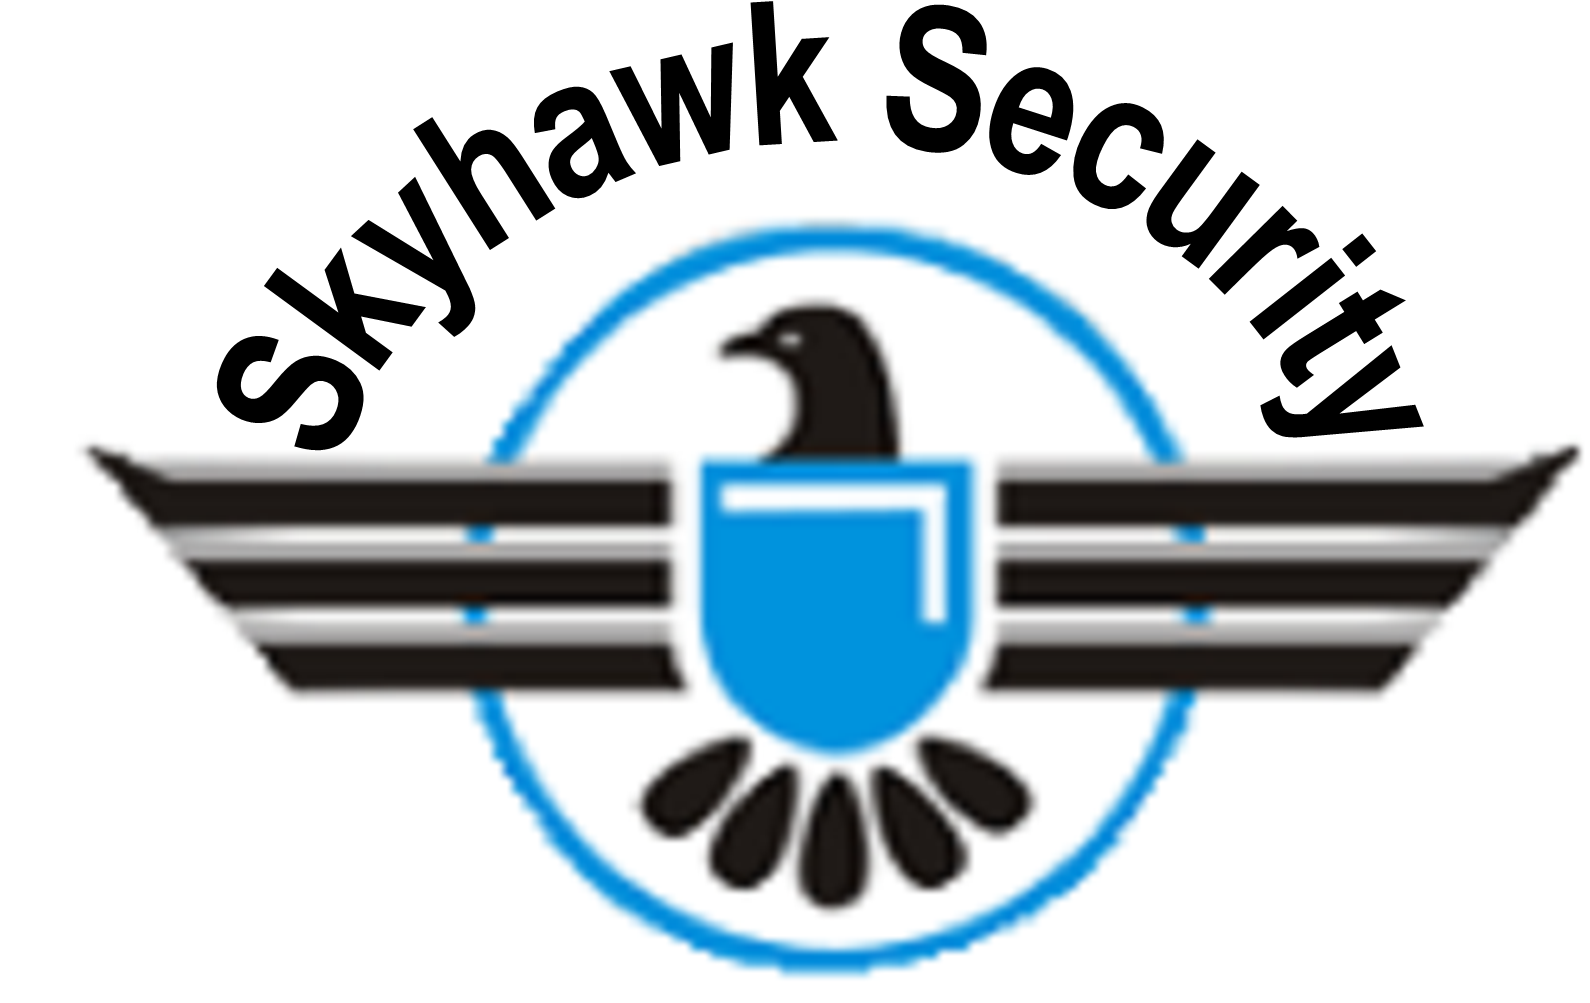 Skyhawk Security